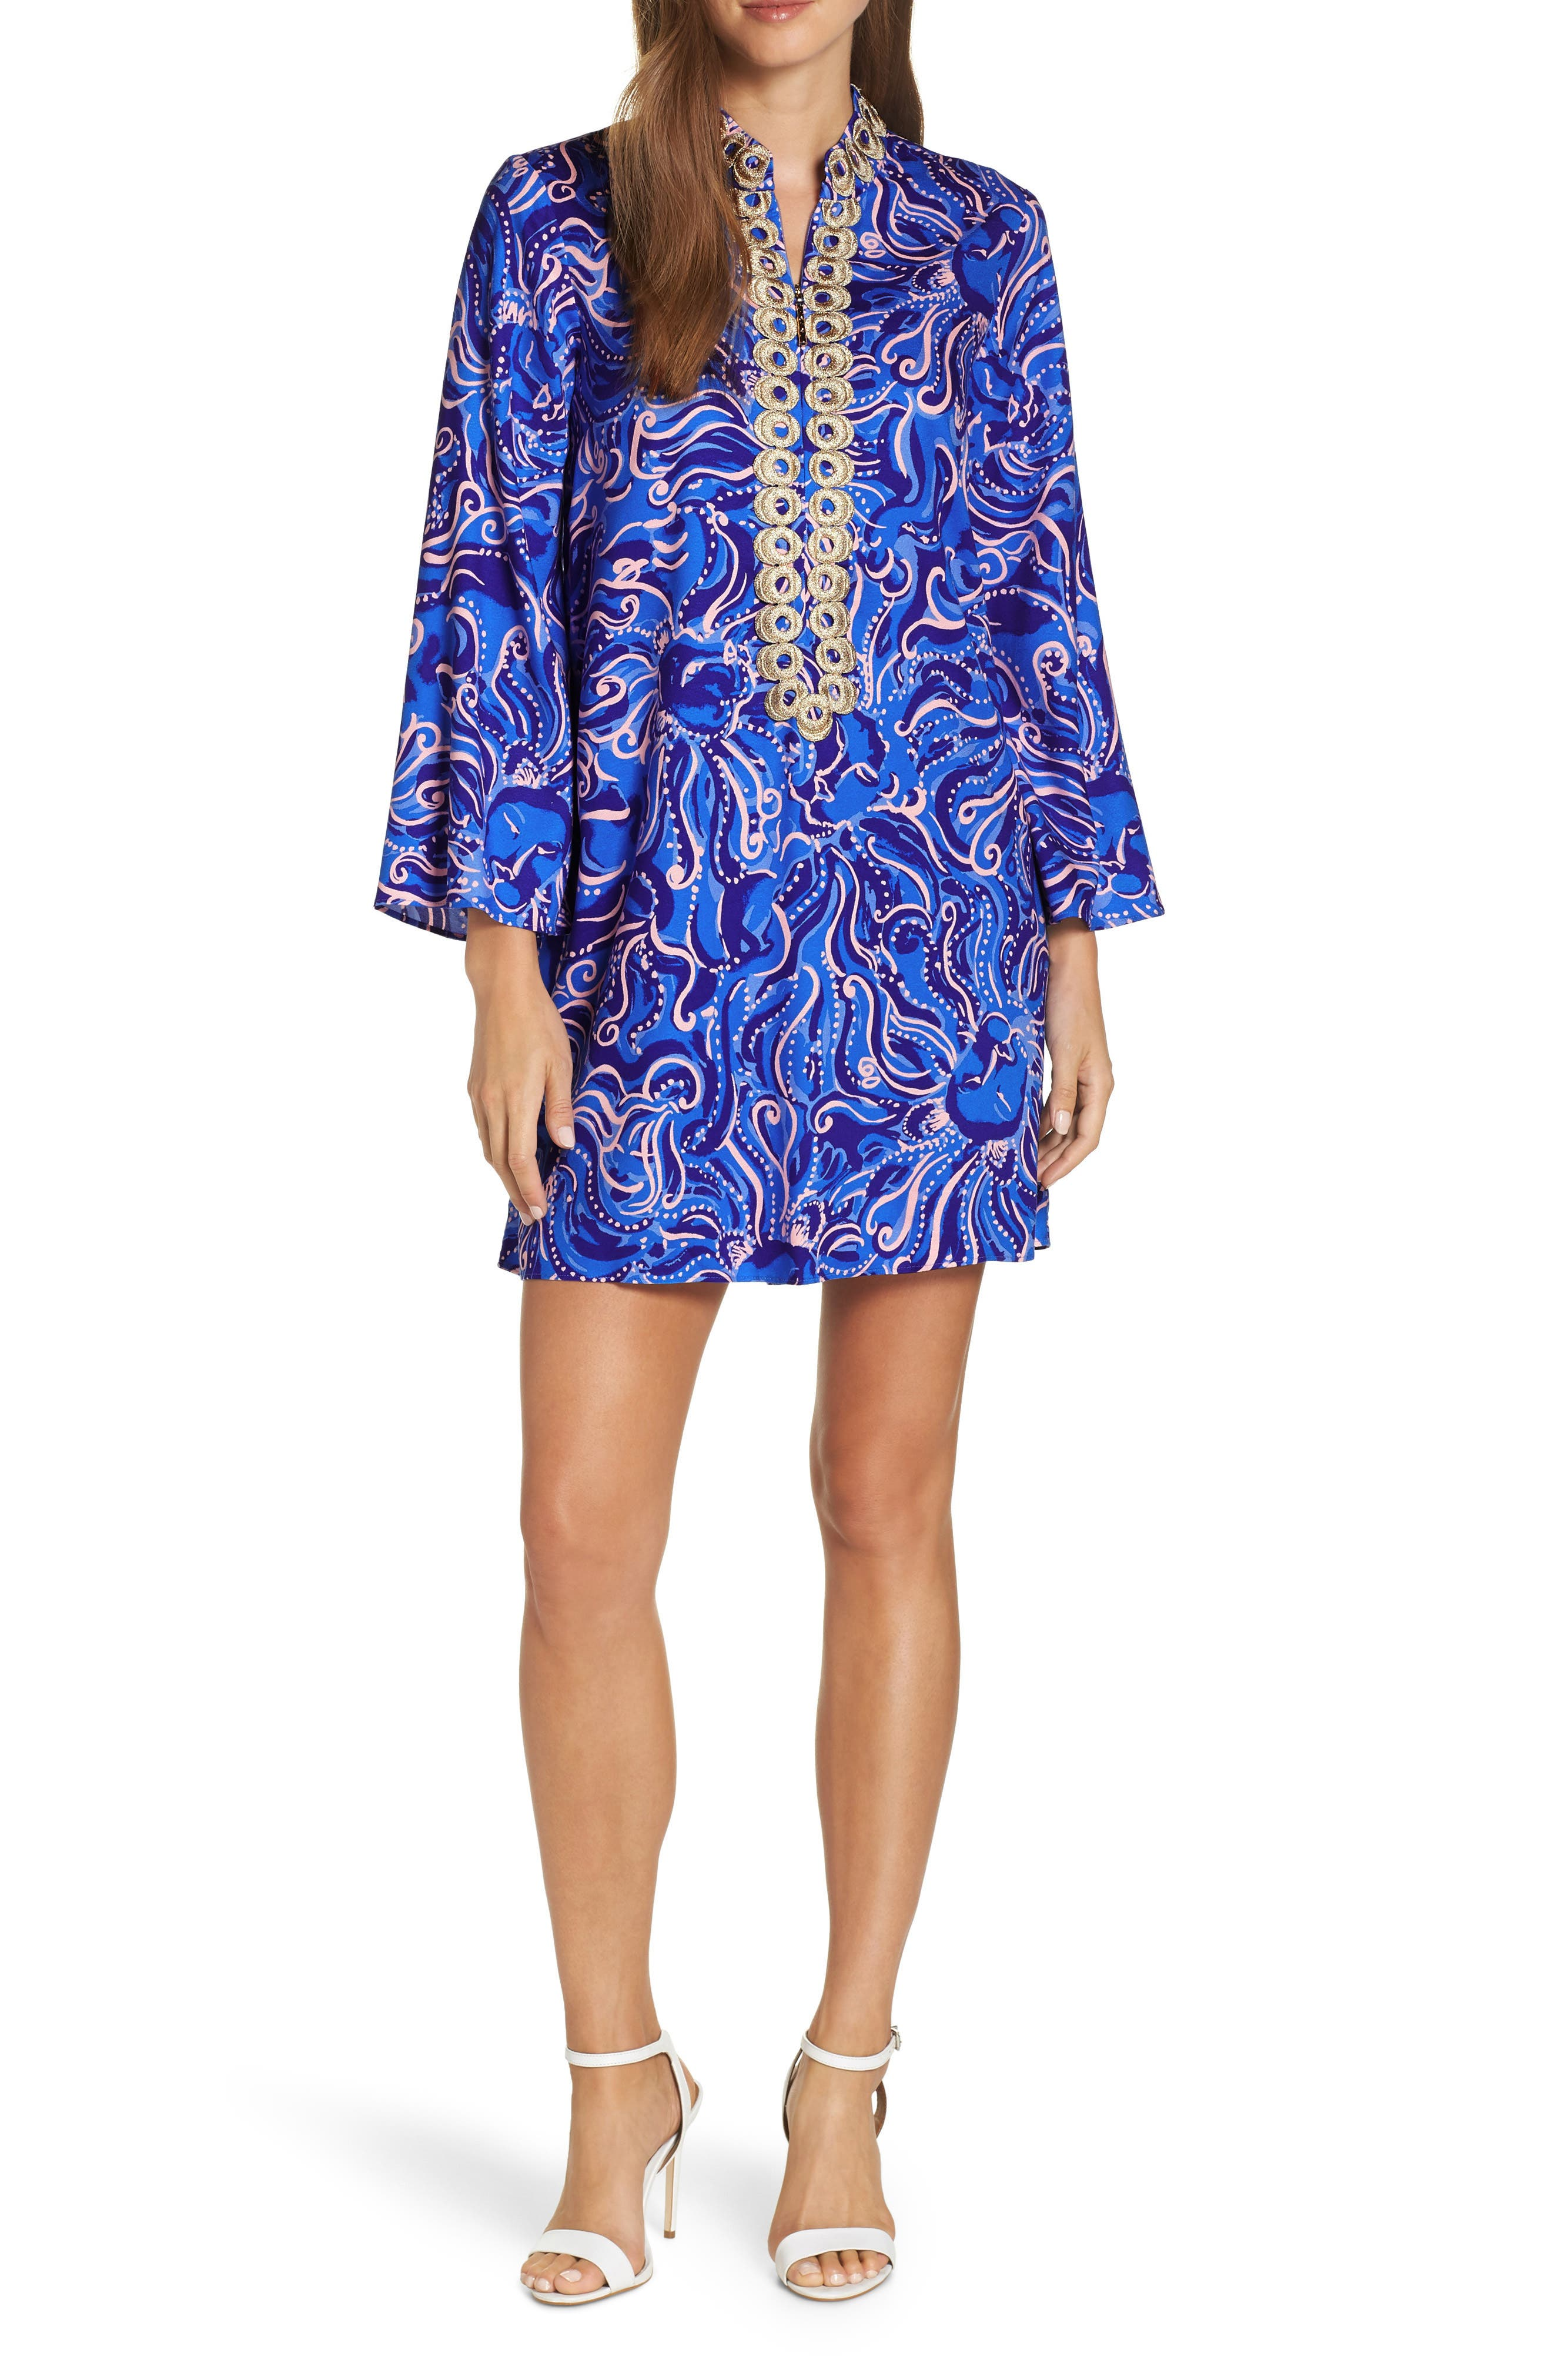 Lilly Pulitzer Gracelynn Tunic Dress